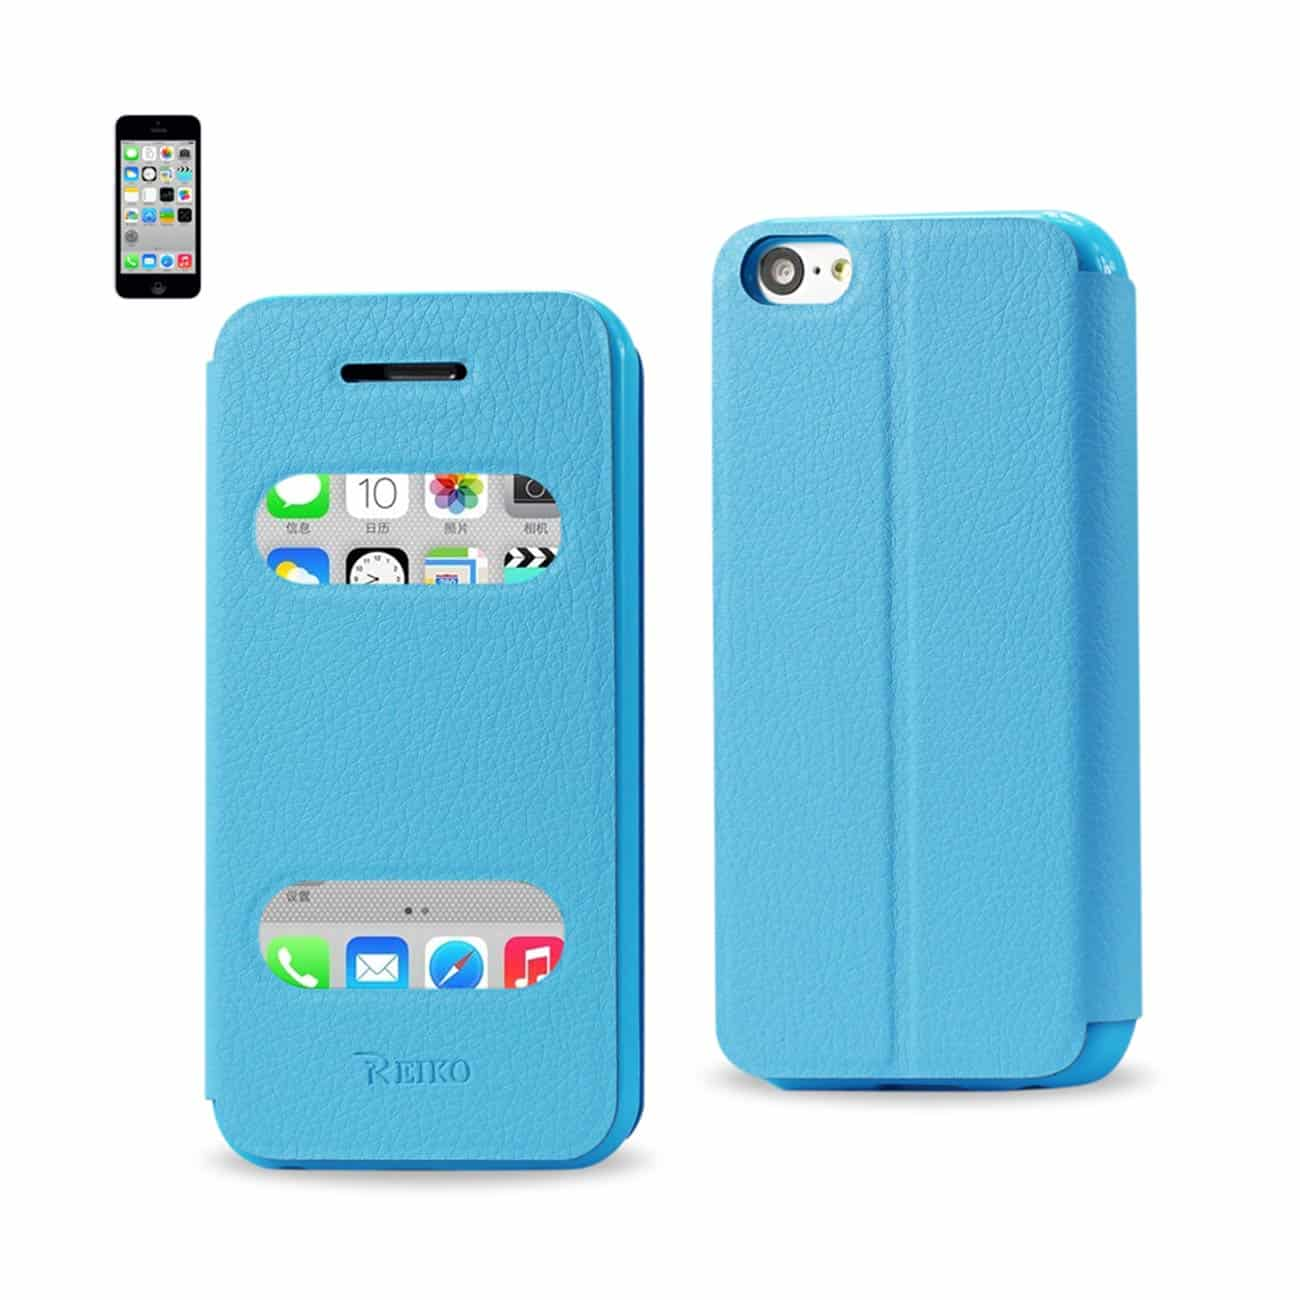 IPHONE 5C WINDOW FLIP FOLIO CASE IN BLUE